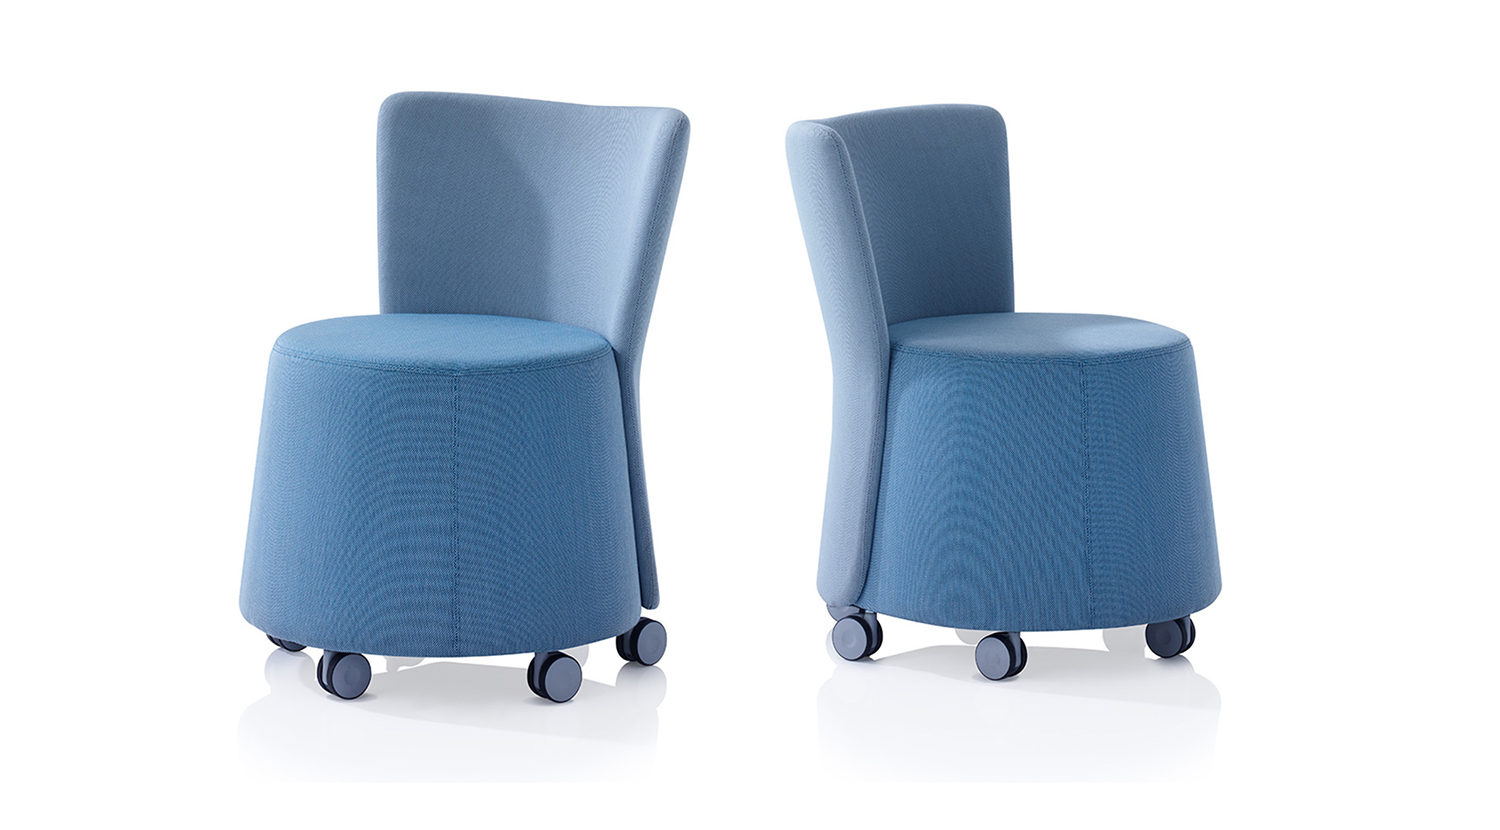 Two blue Ramsey chairs